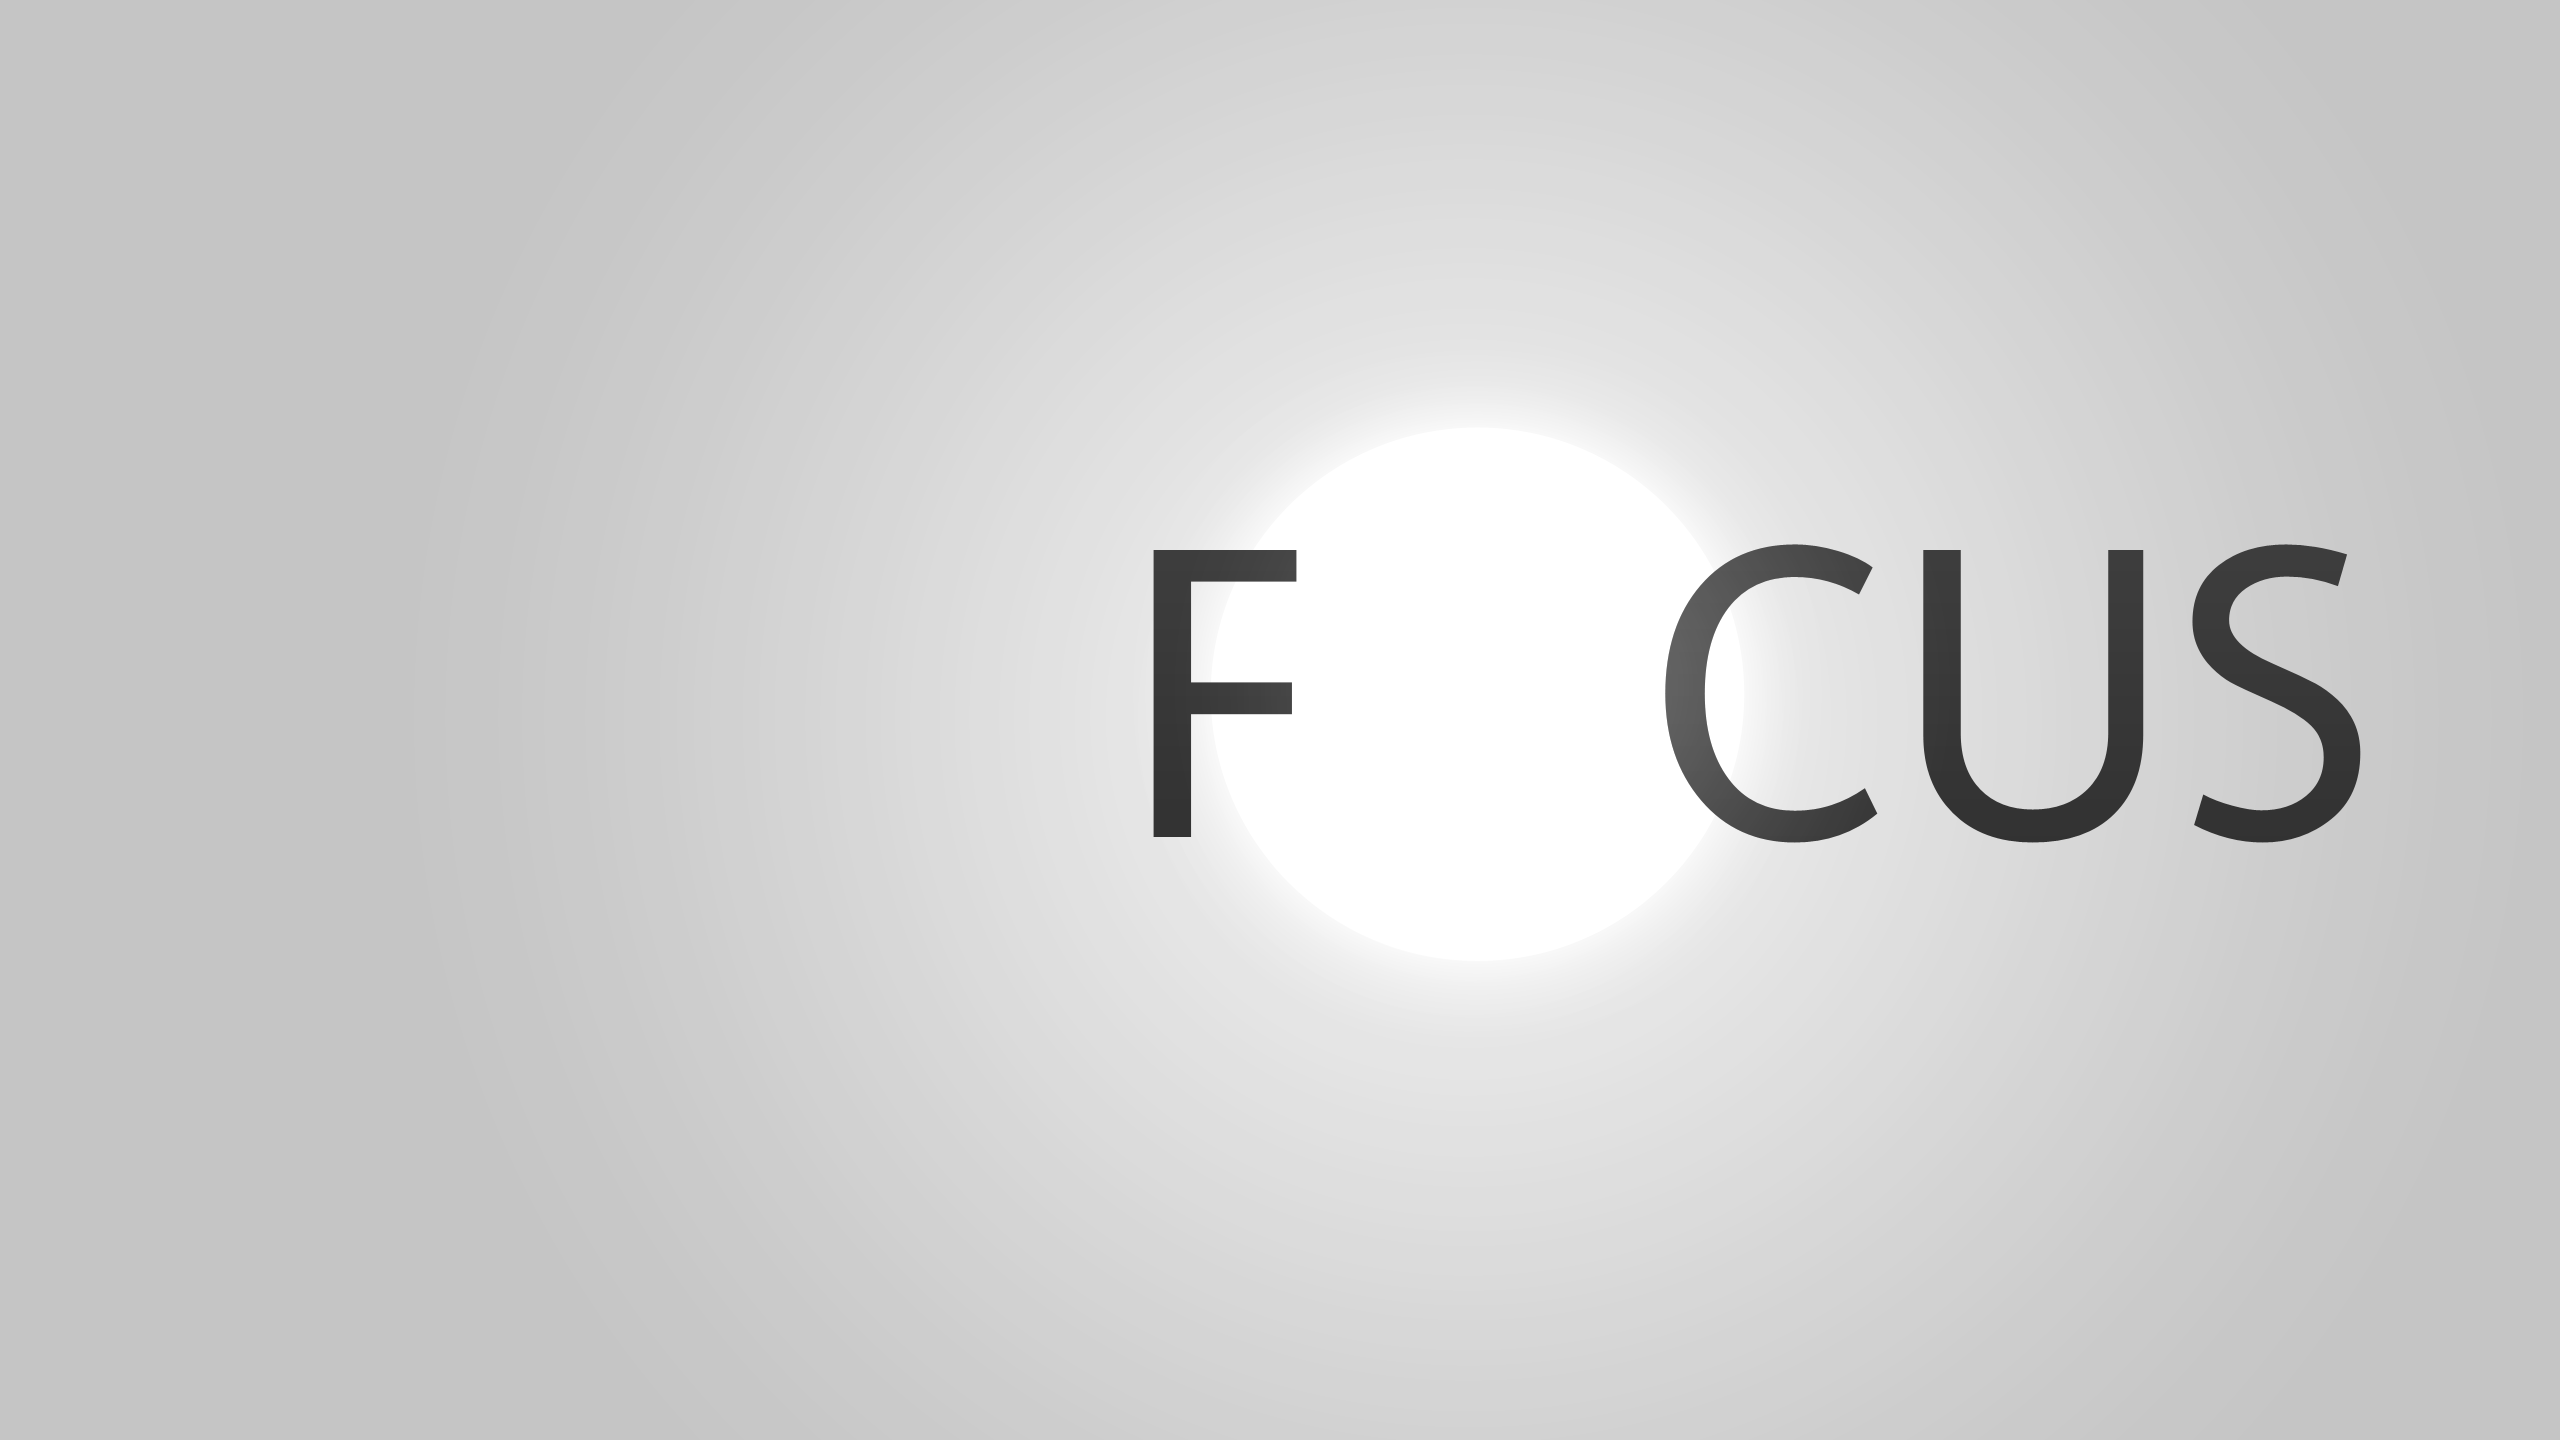 Focus Wallpaper Group with items